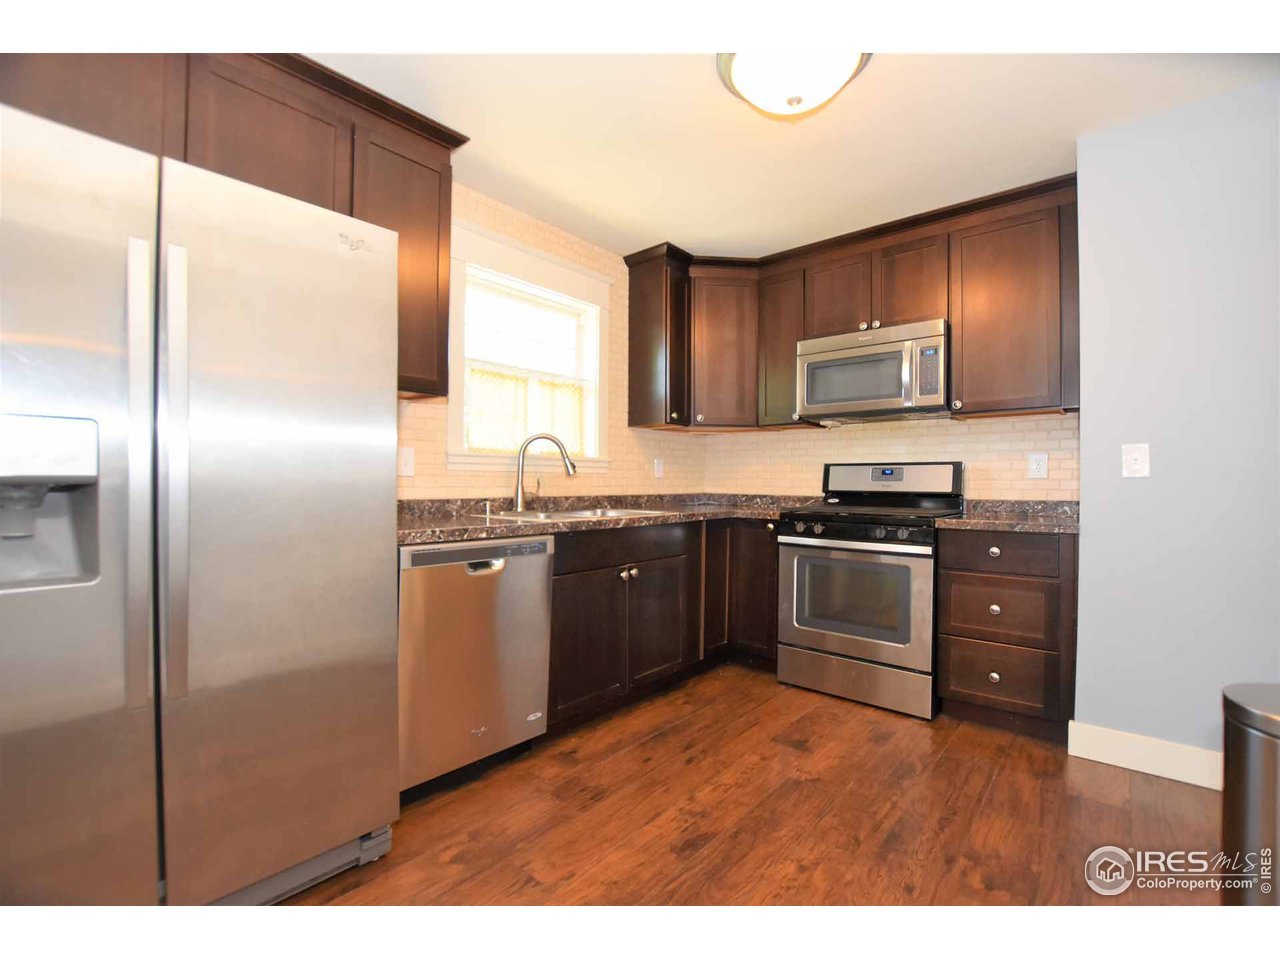 Stainless steel appliances all stay!